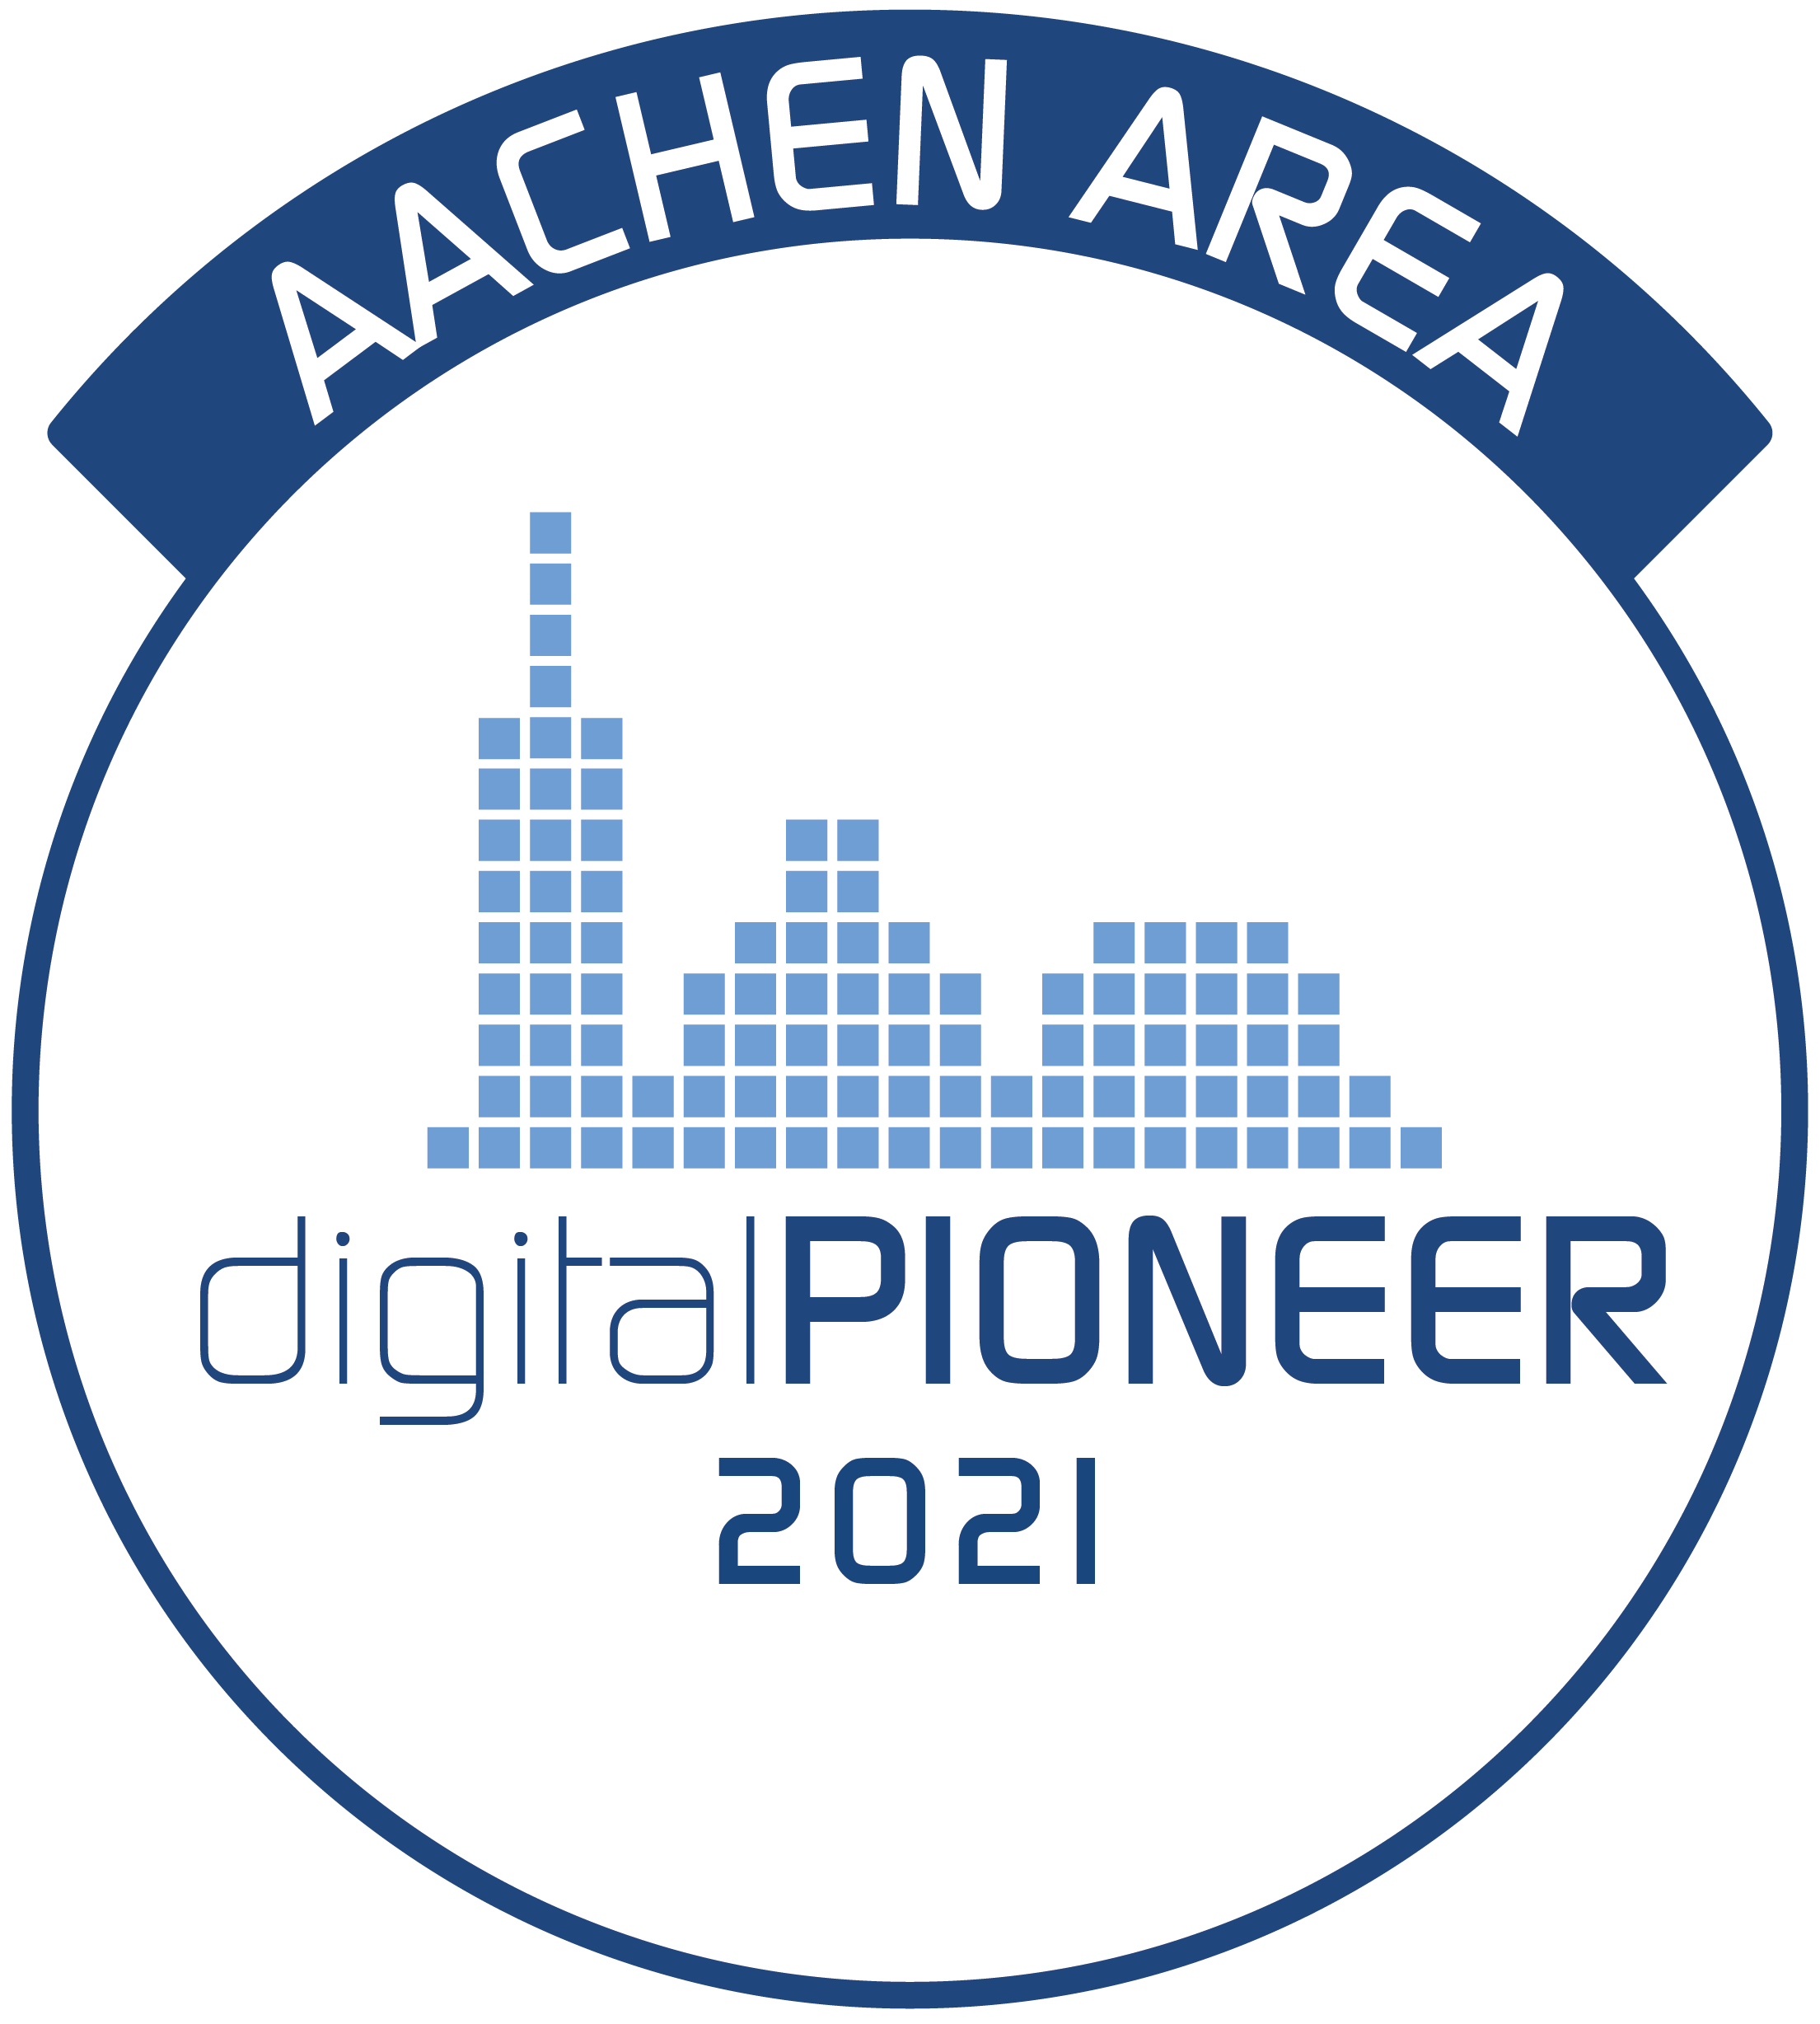 Digital Pioneers